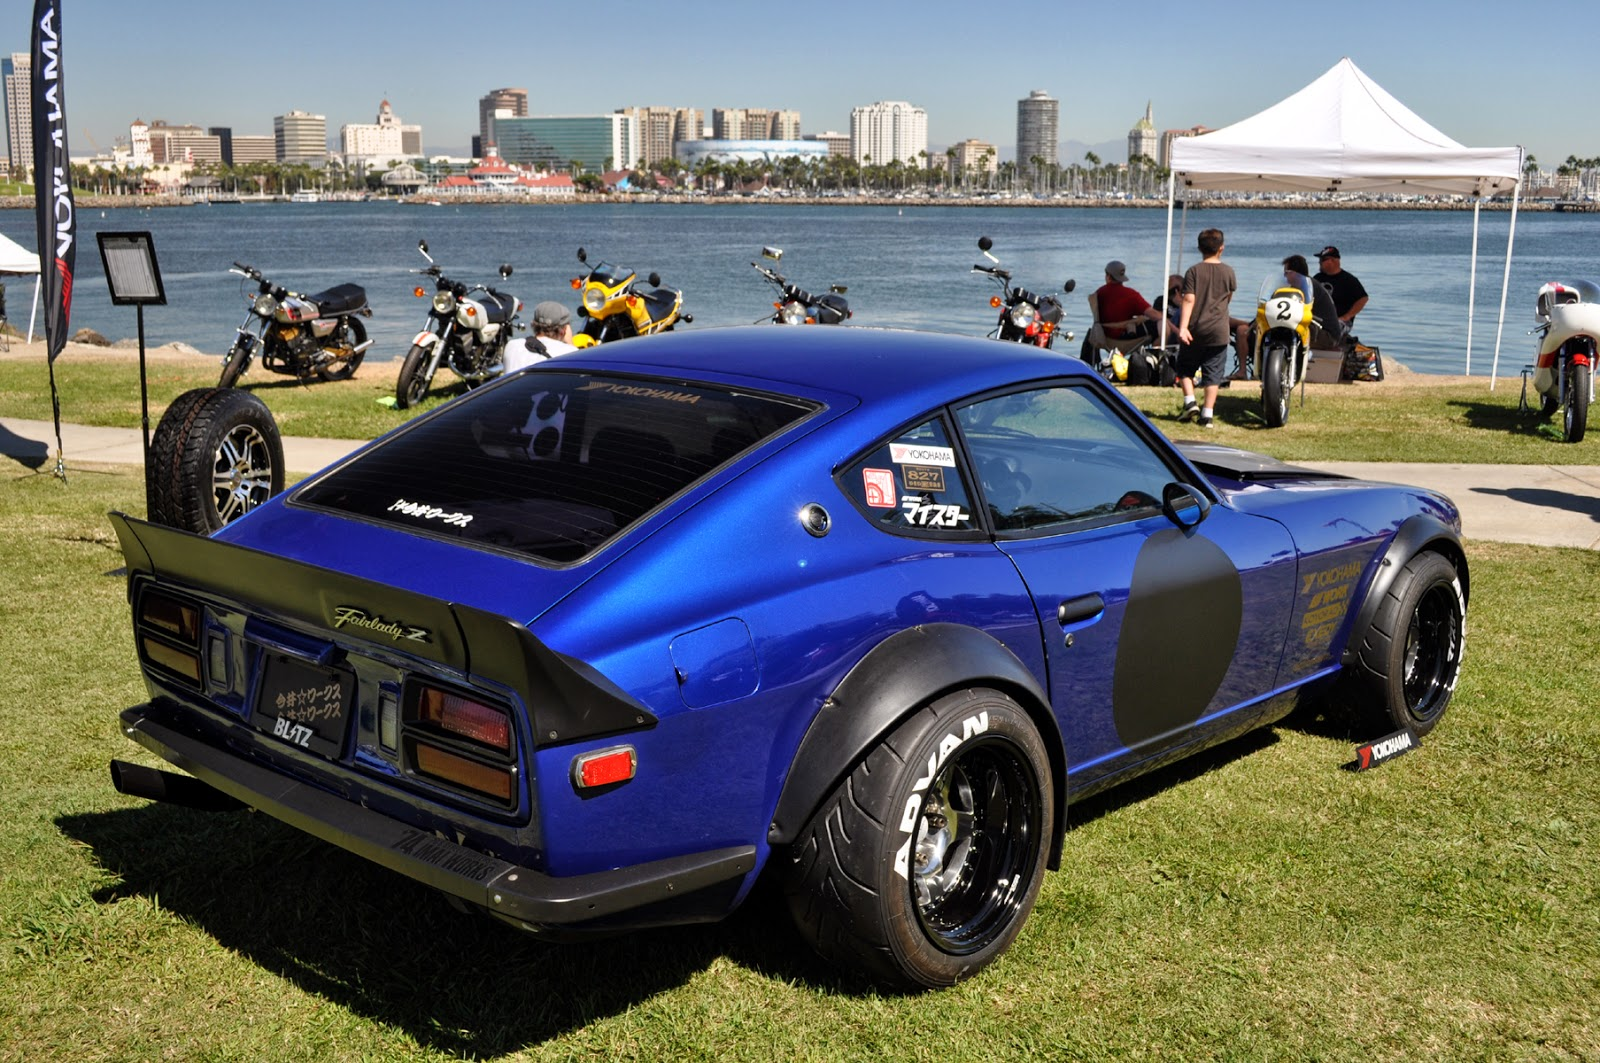 Just A Car Guy: Sports Cars At The Japanese Classic Car Show